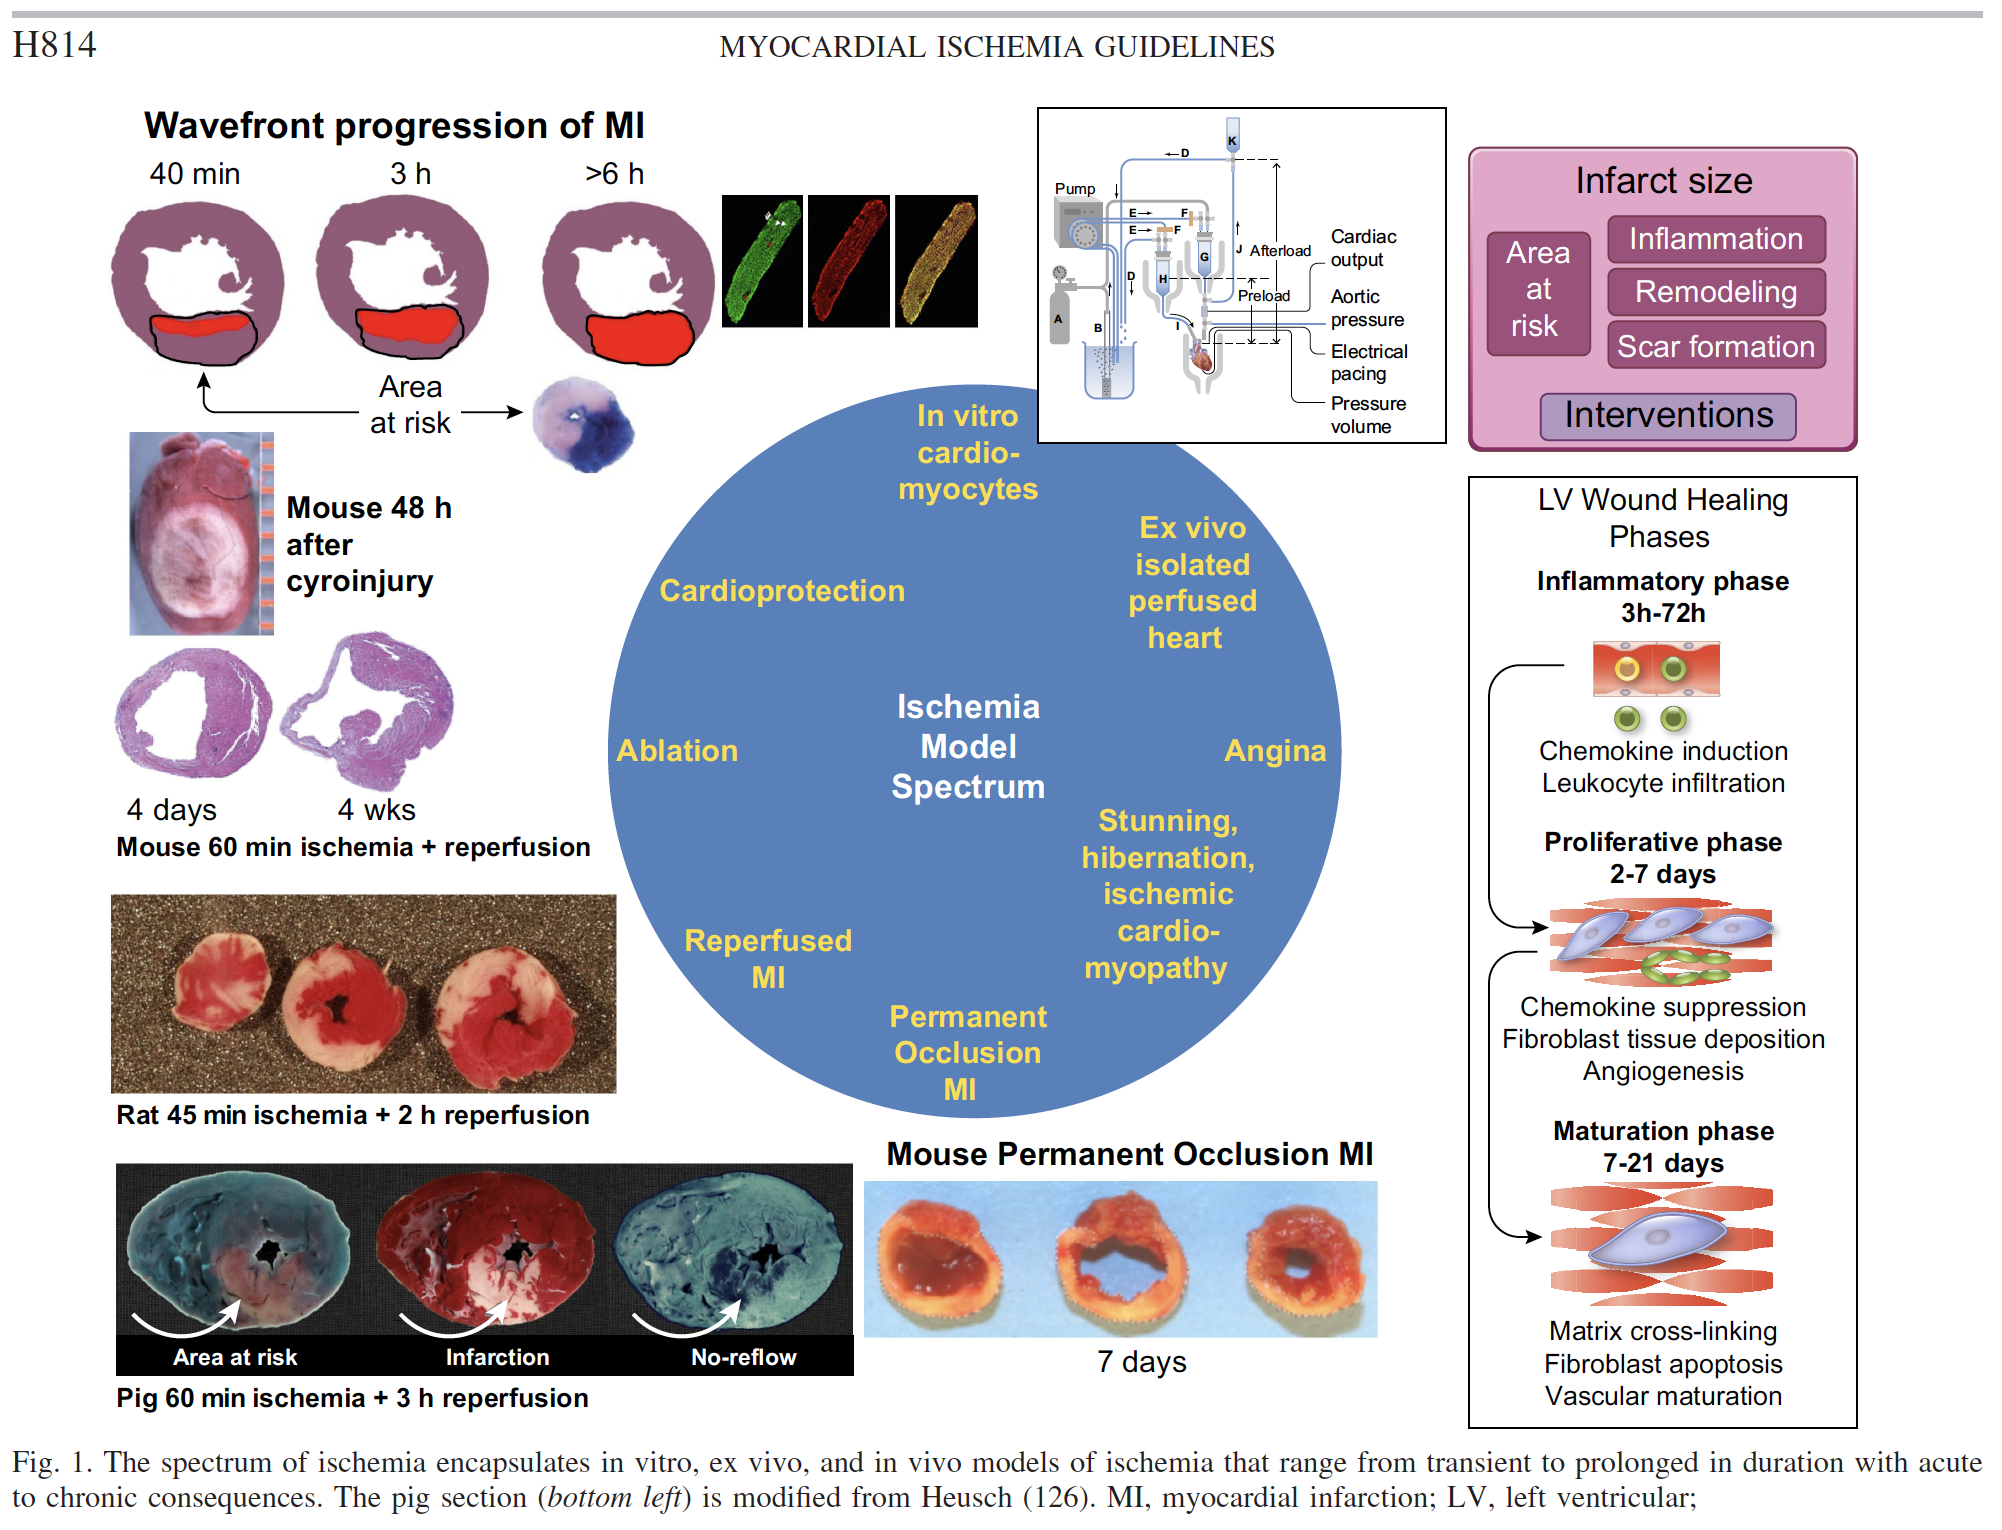 Guidelines for experimental models of myocardial ischemia and infarction